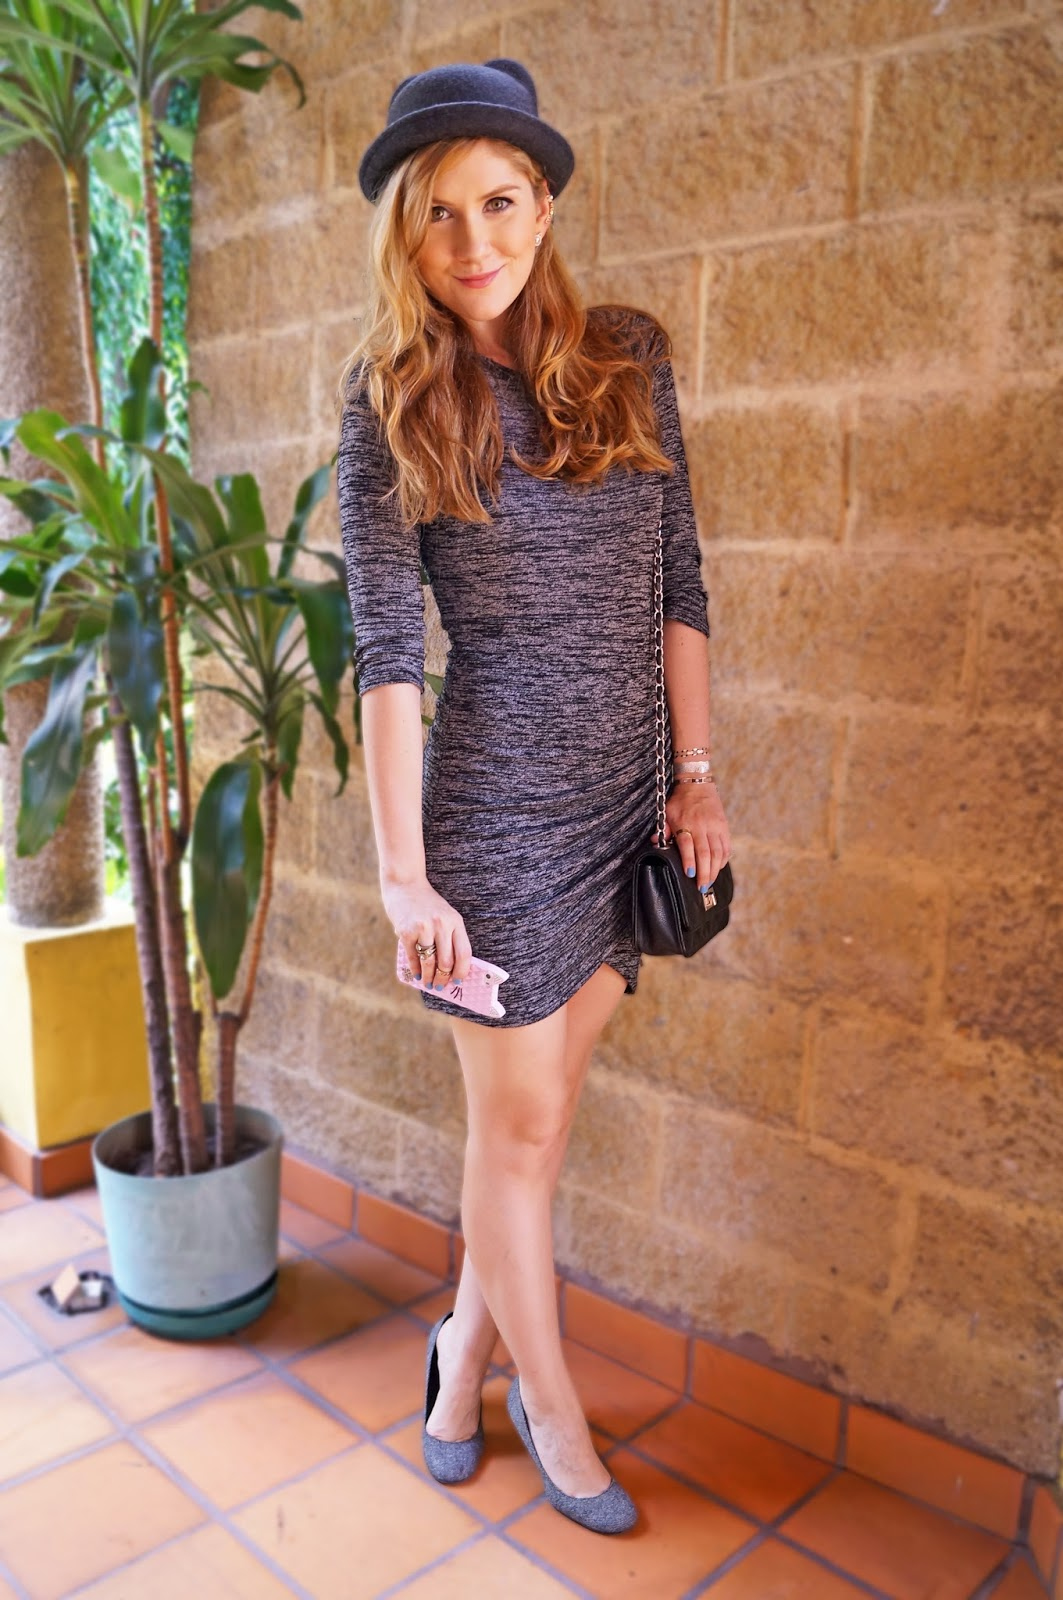 A great way to wear a fun hat is pairing it with a simple sweater dress. So chic!